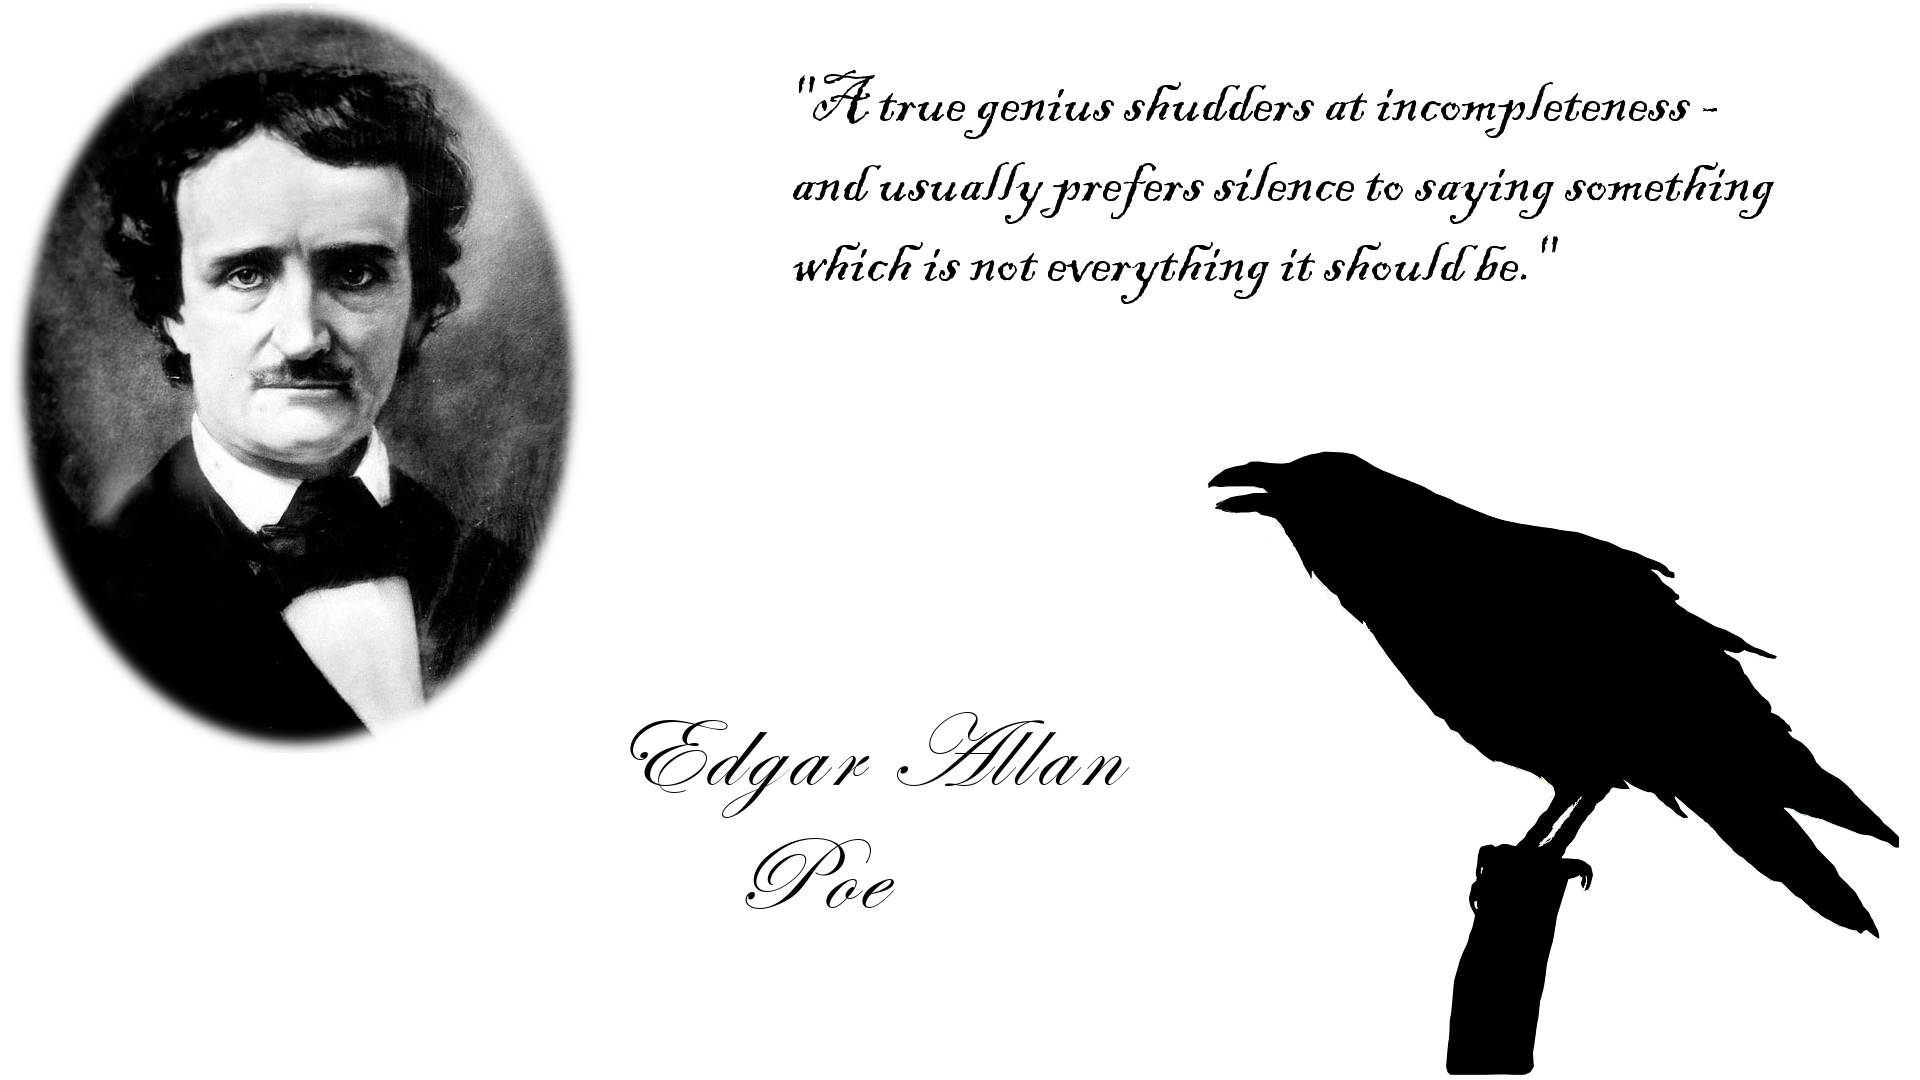 a brief lifes history of edgar allan poe Edgar allan poe pioneered a distinctly american brand of gothic horror and  romanticism, and introduced the short story to the literary tradition.